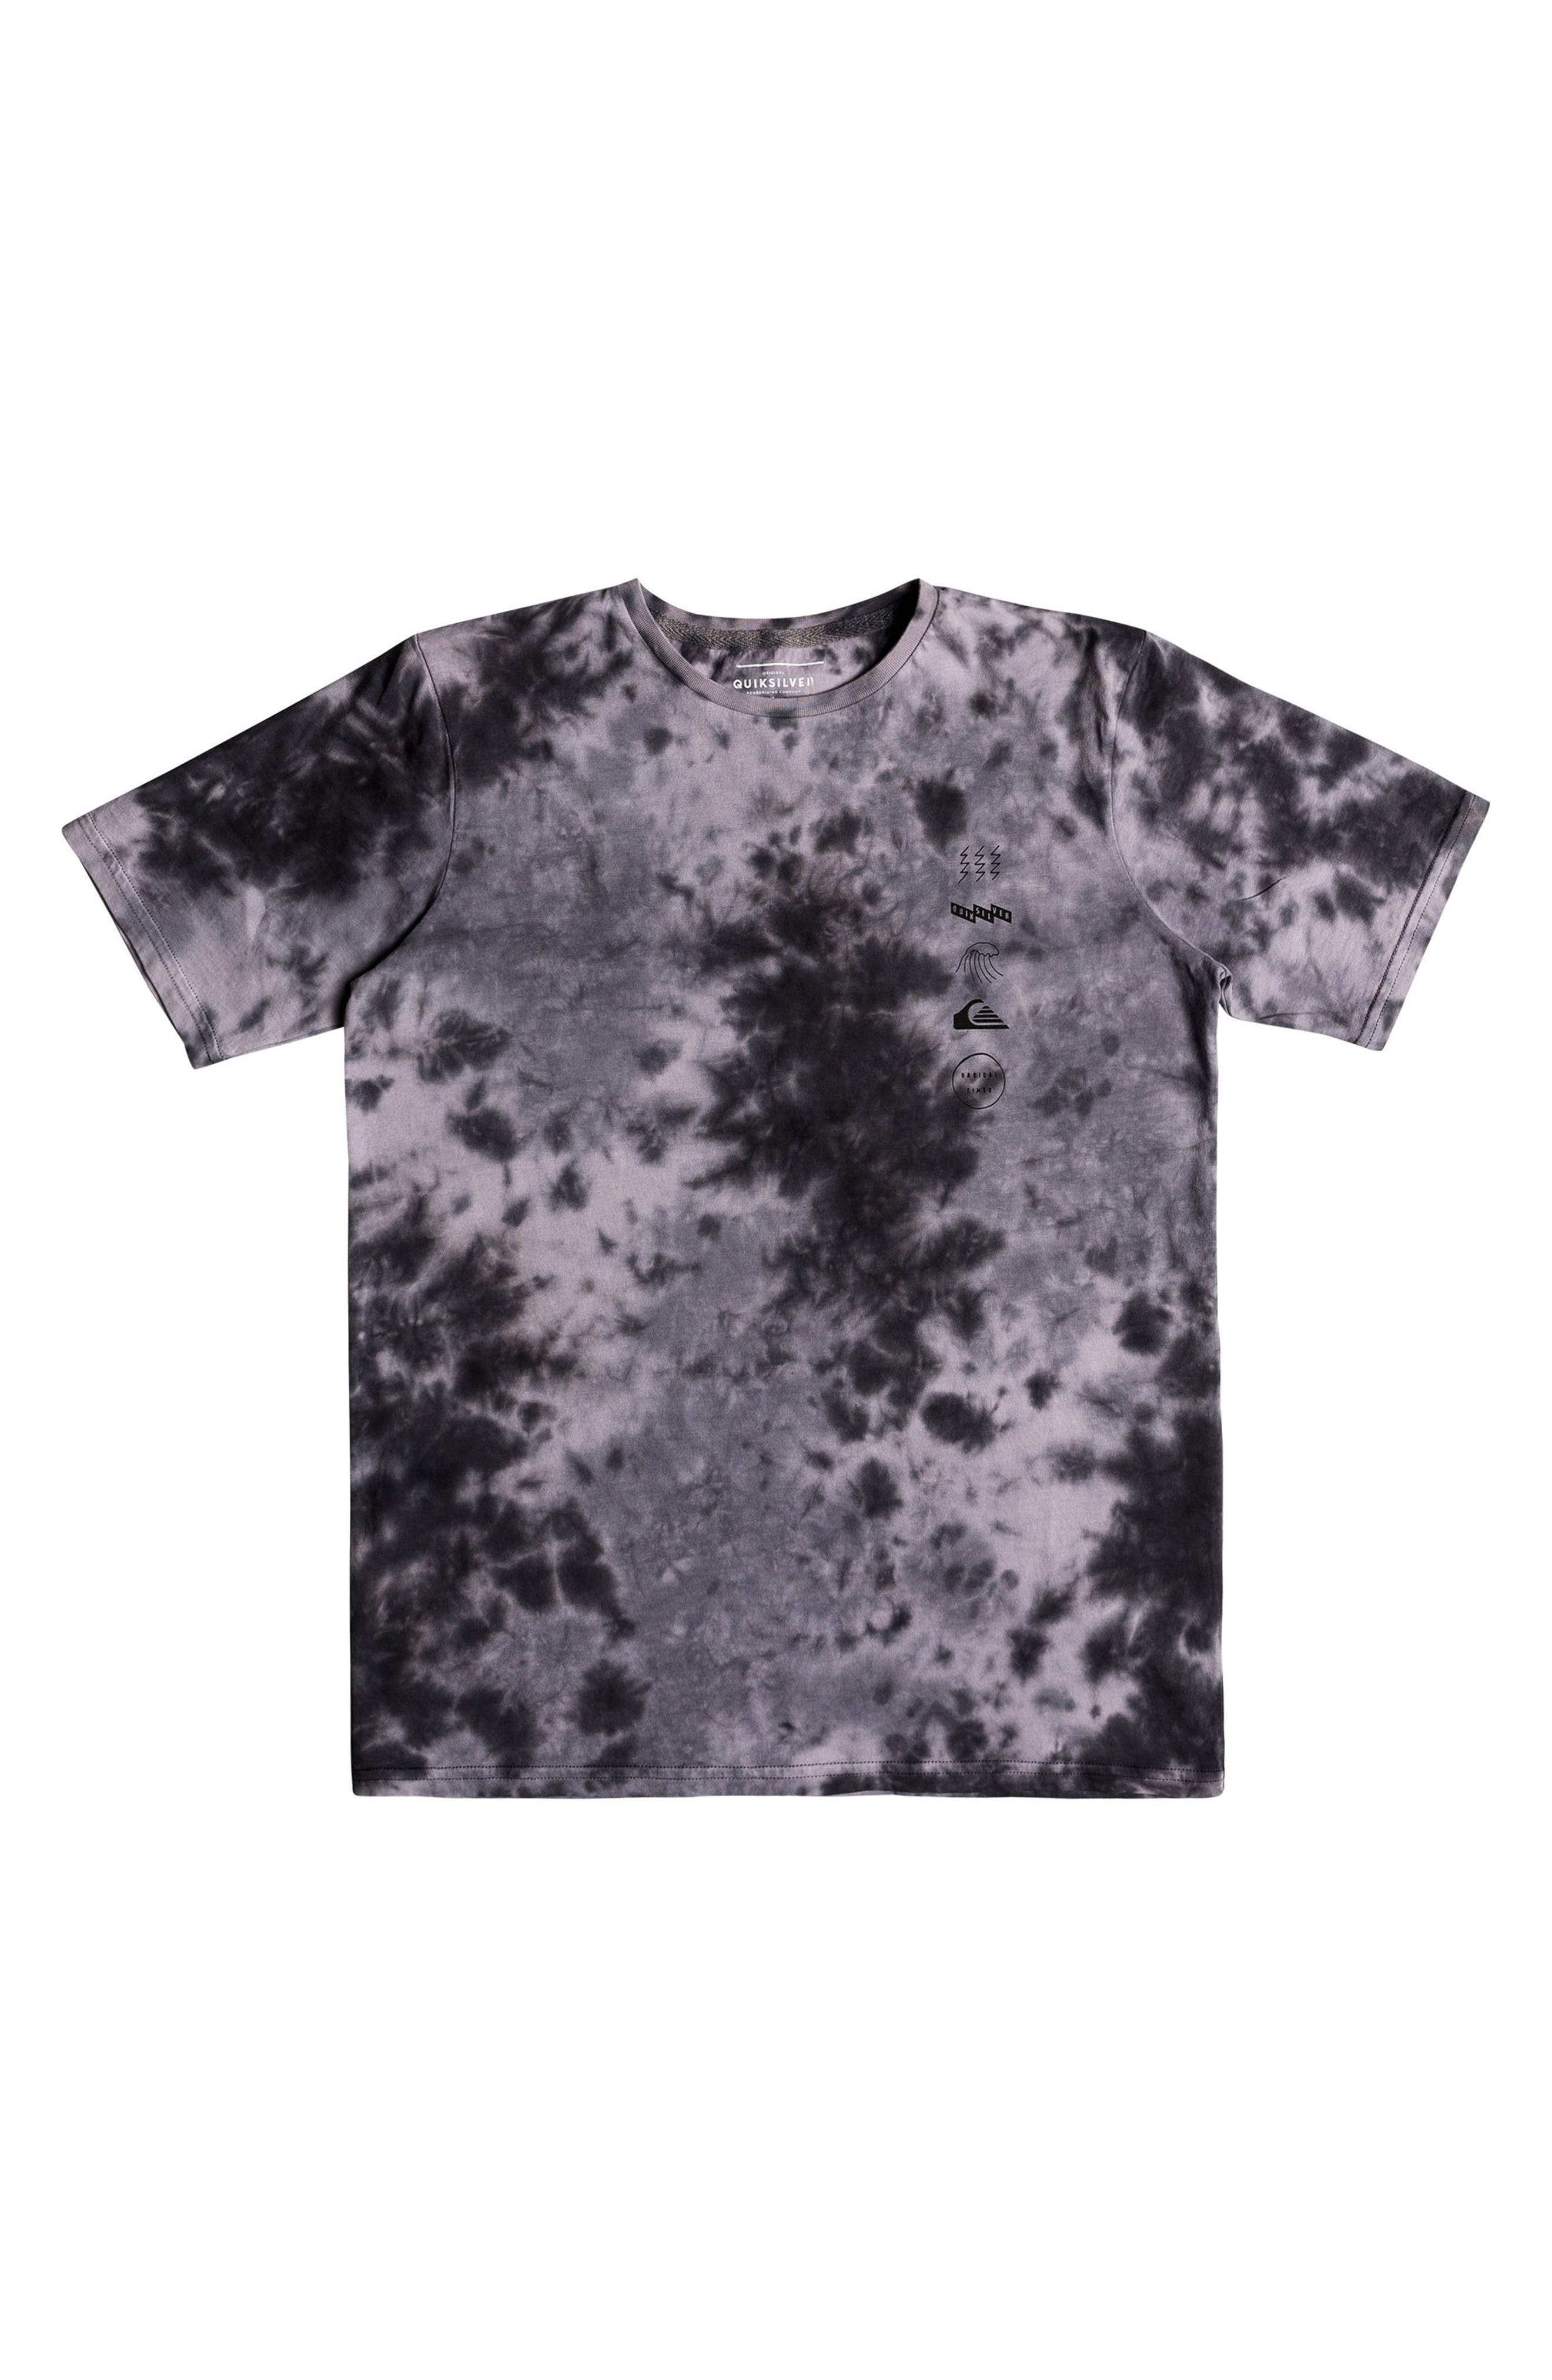 Alternate Image 1 Selected - Quiksilver Gibus Moon Graphic T-Shirt (Big Boys)